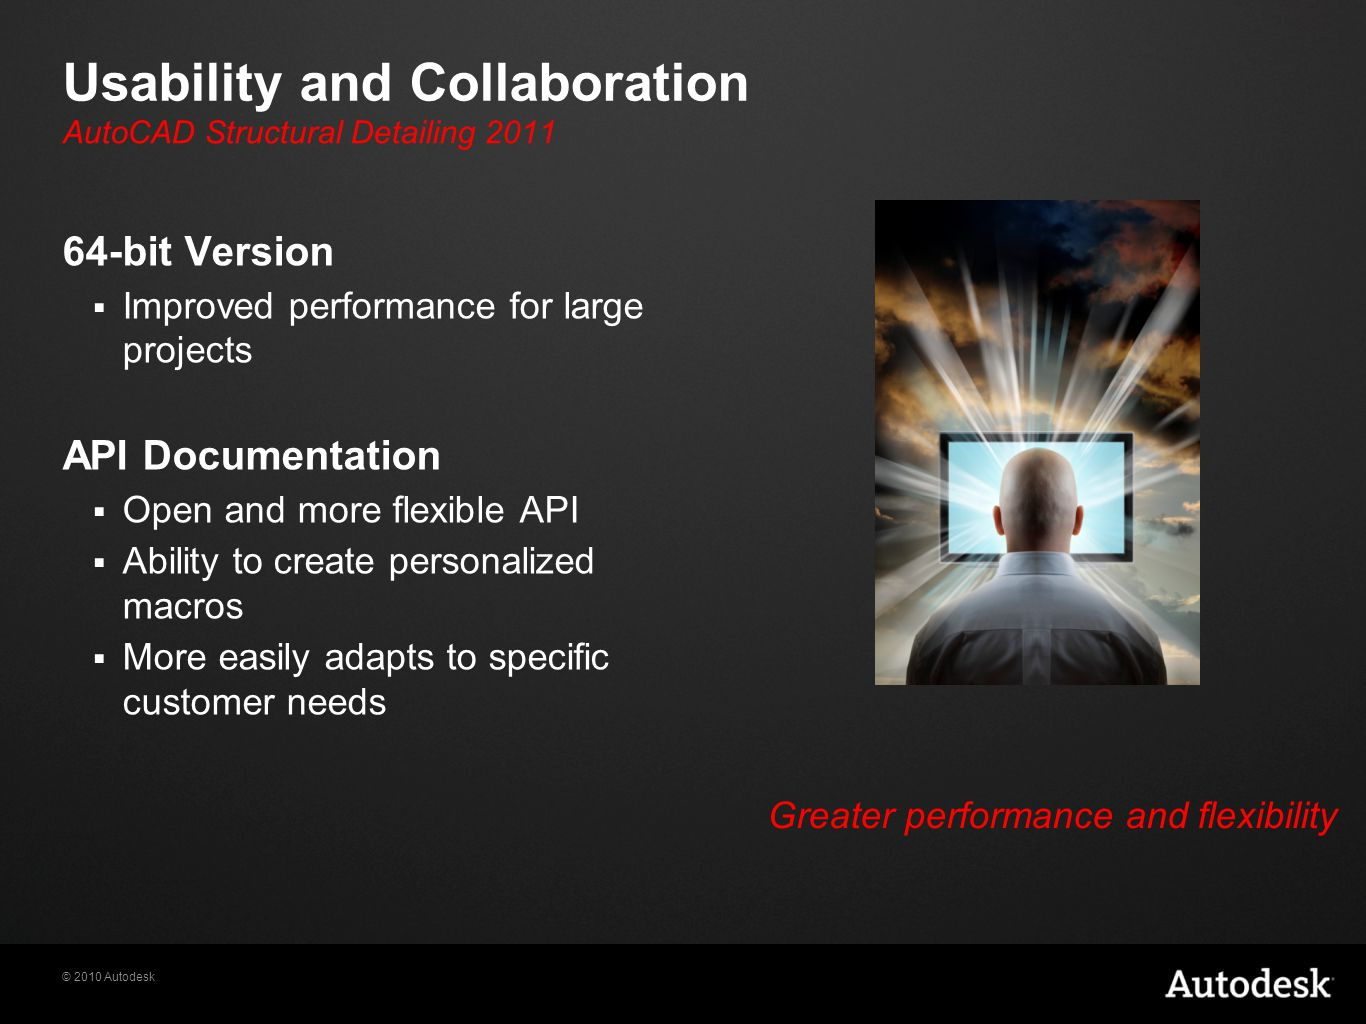 © 2010 Autodesk Usability and Collaboration 64-bit Version  Improved performance for large projects API Documentation  Open and more flexible API  Ability to create personalized macros  More easily adapts to specific customer needs Greater performance and flexibility AutoCAD Structural Detailing 2011